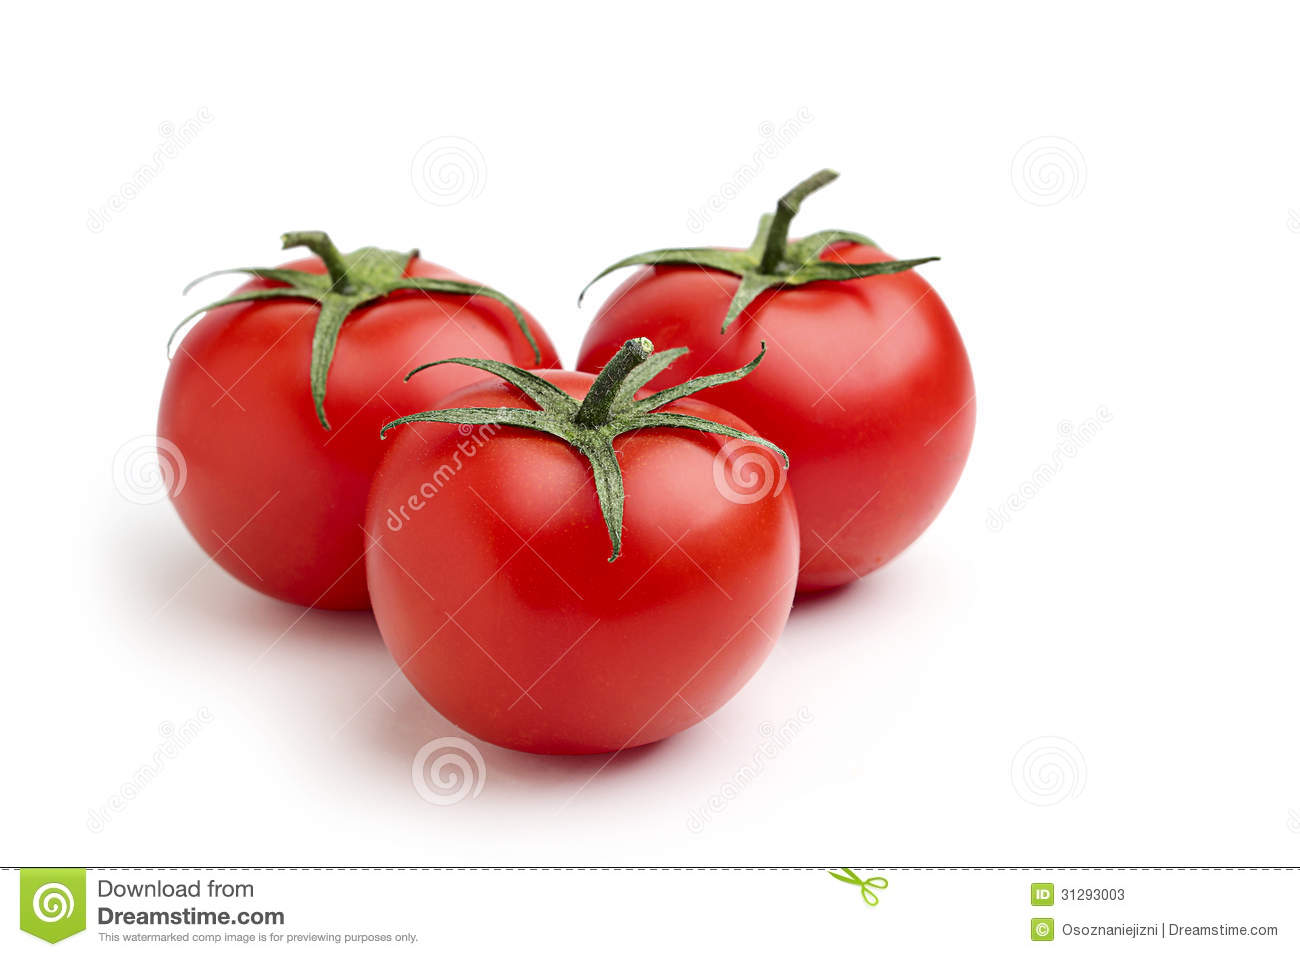 Drie rode tomaten.